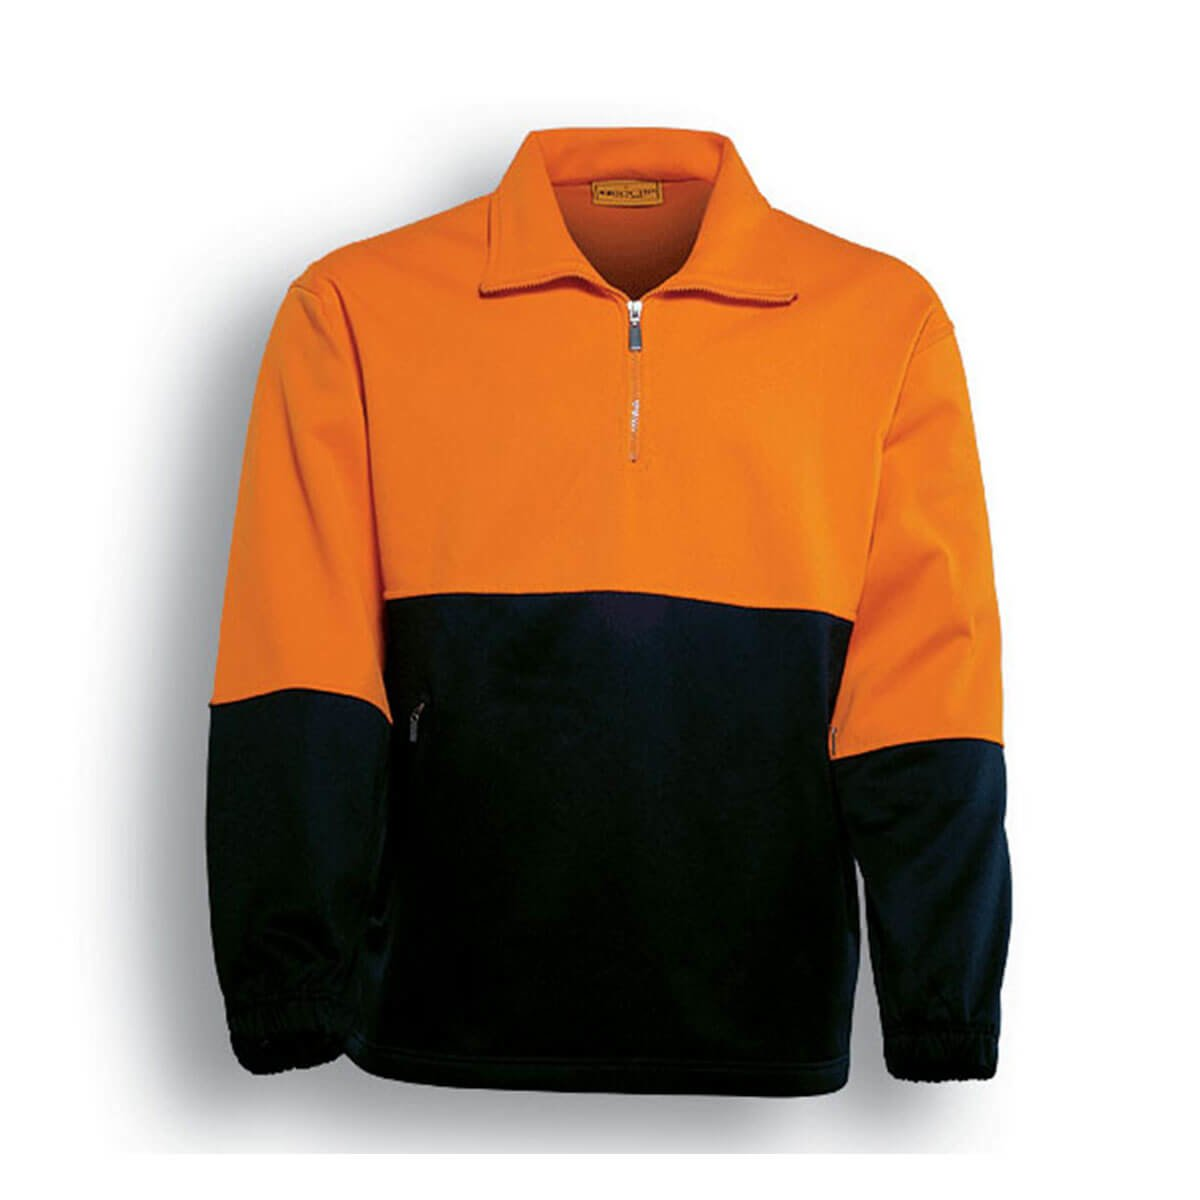 HI-VIS 1/2 ZIP FLEECE-Orange / Black